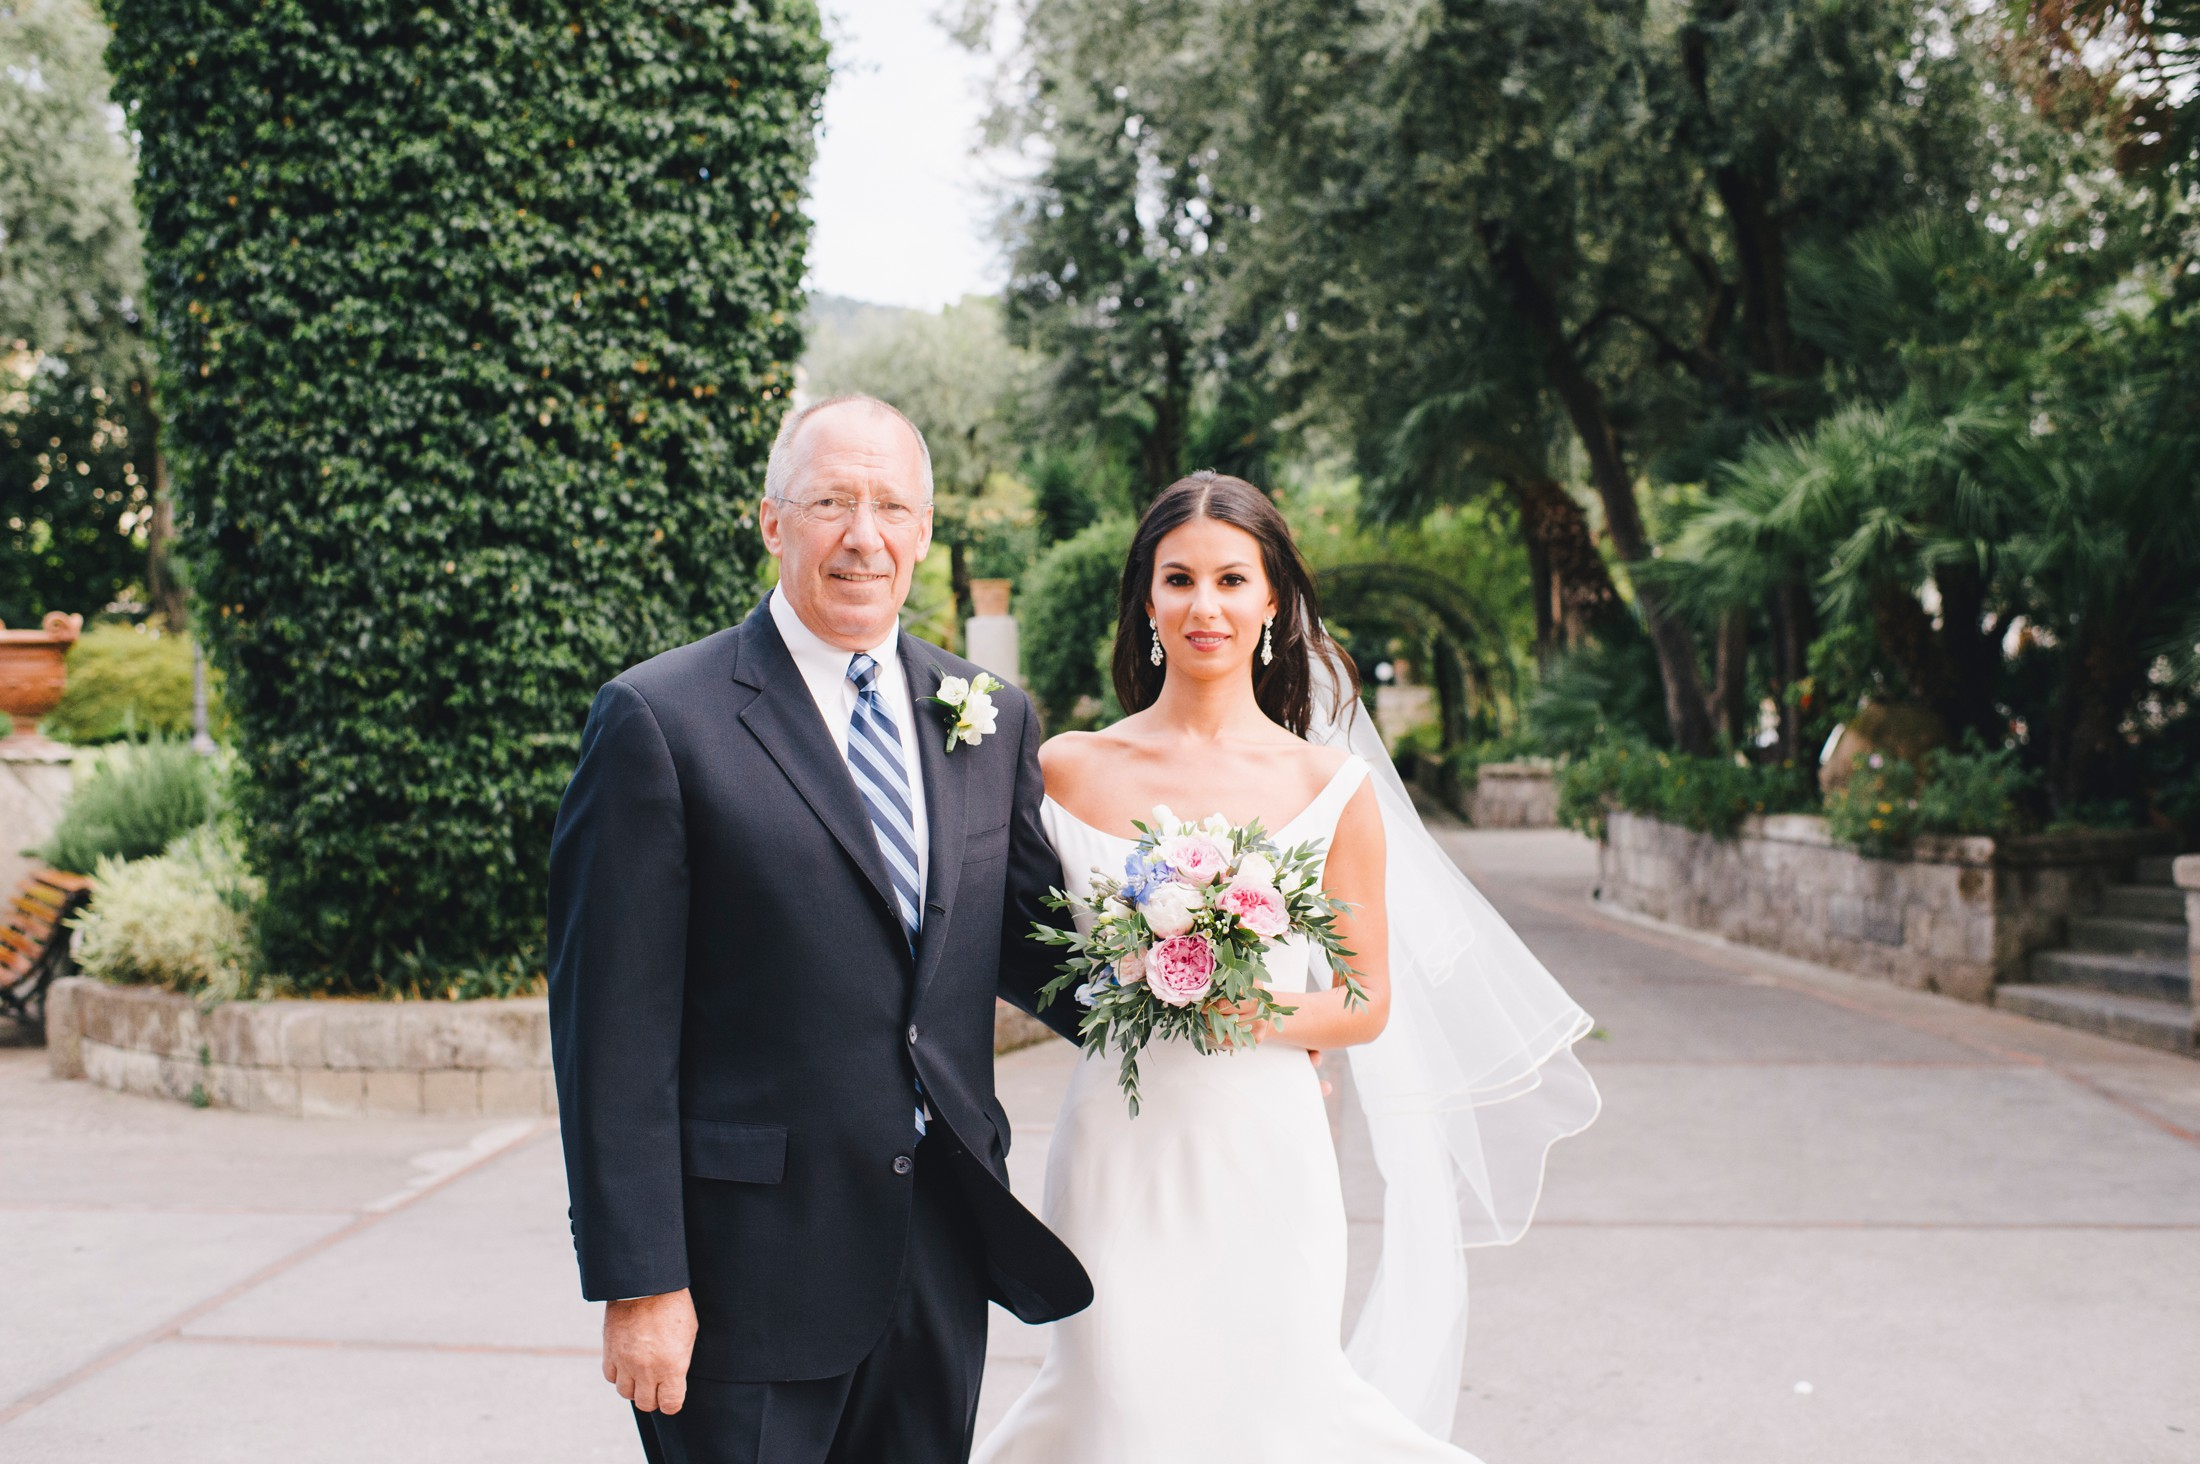 wedding in sorrento the bride with her father